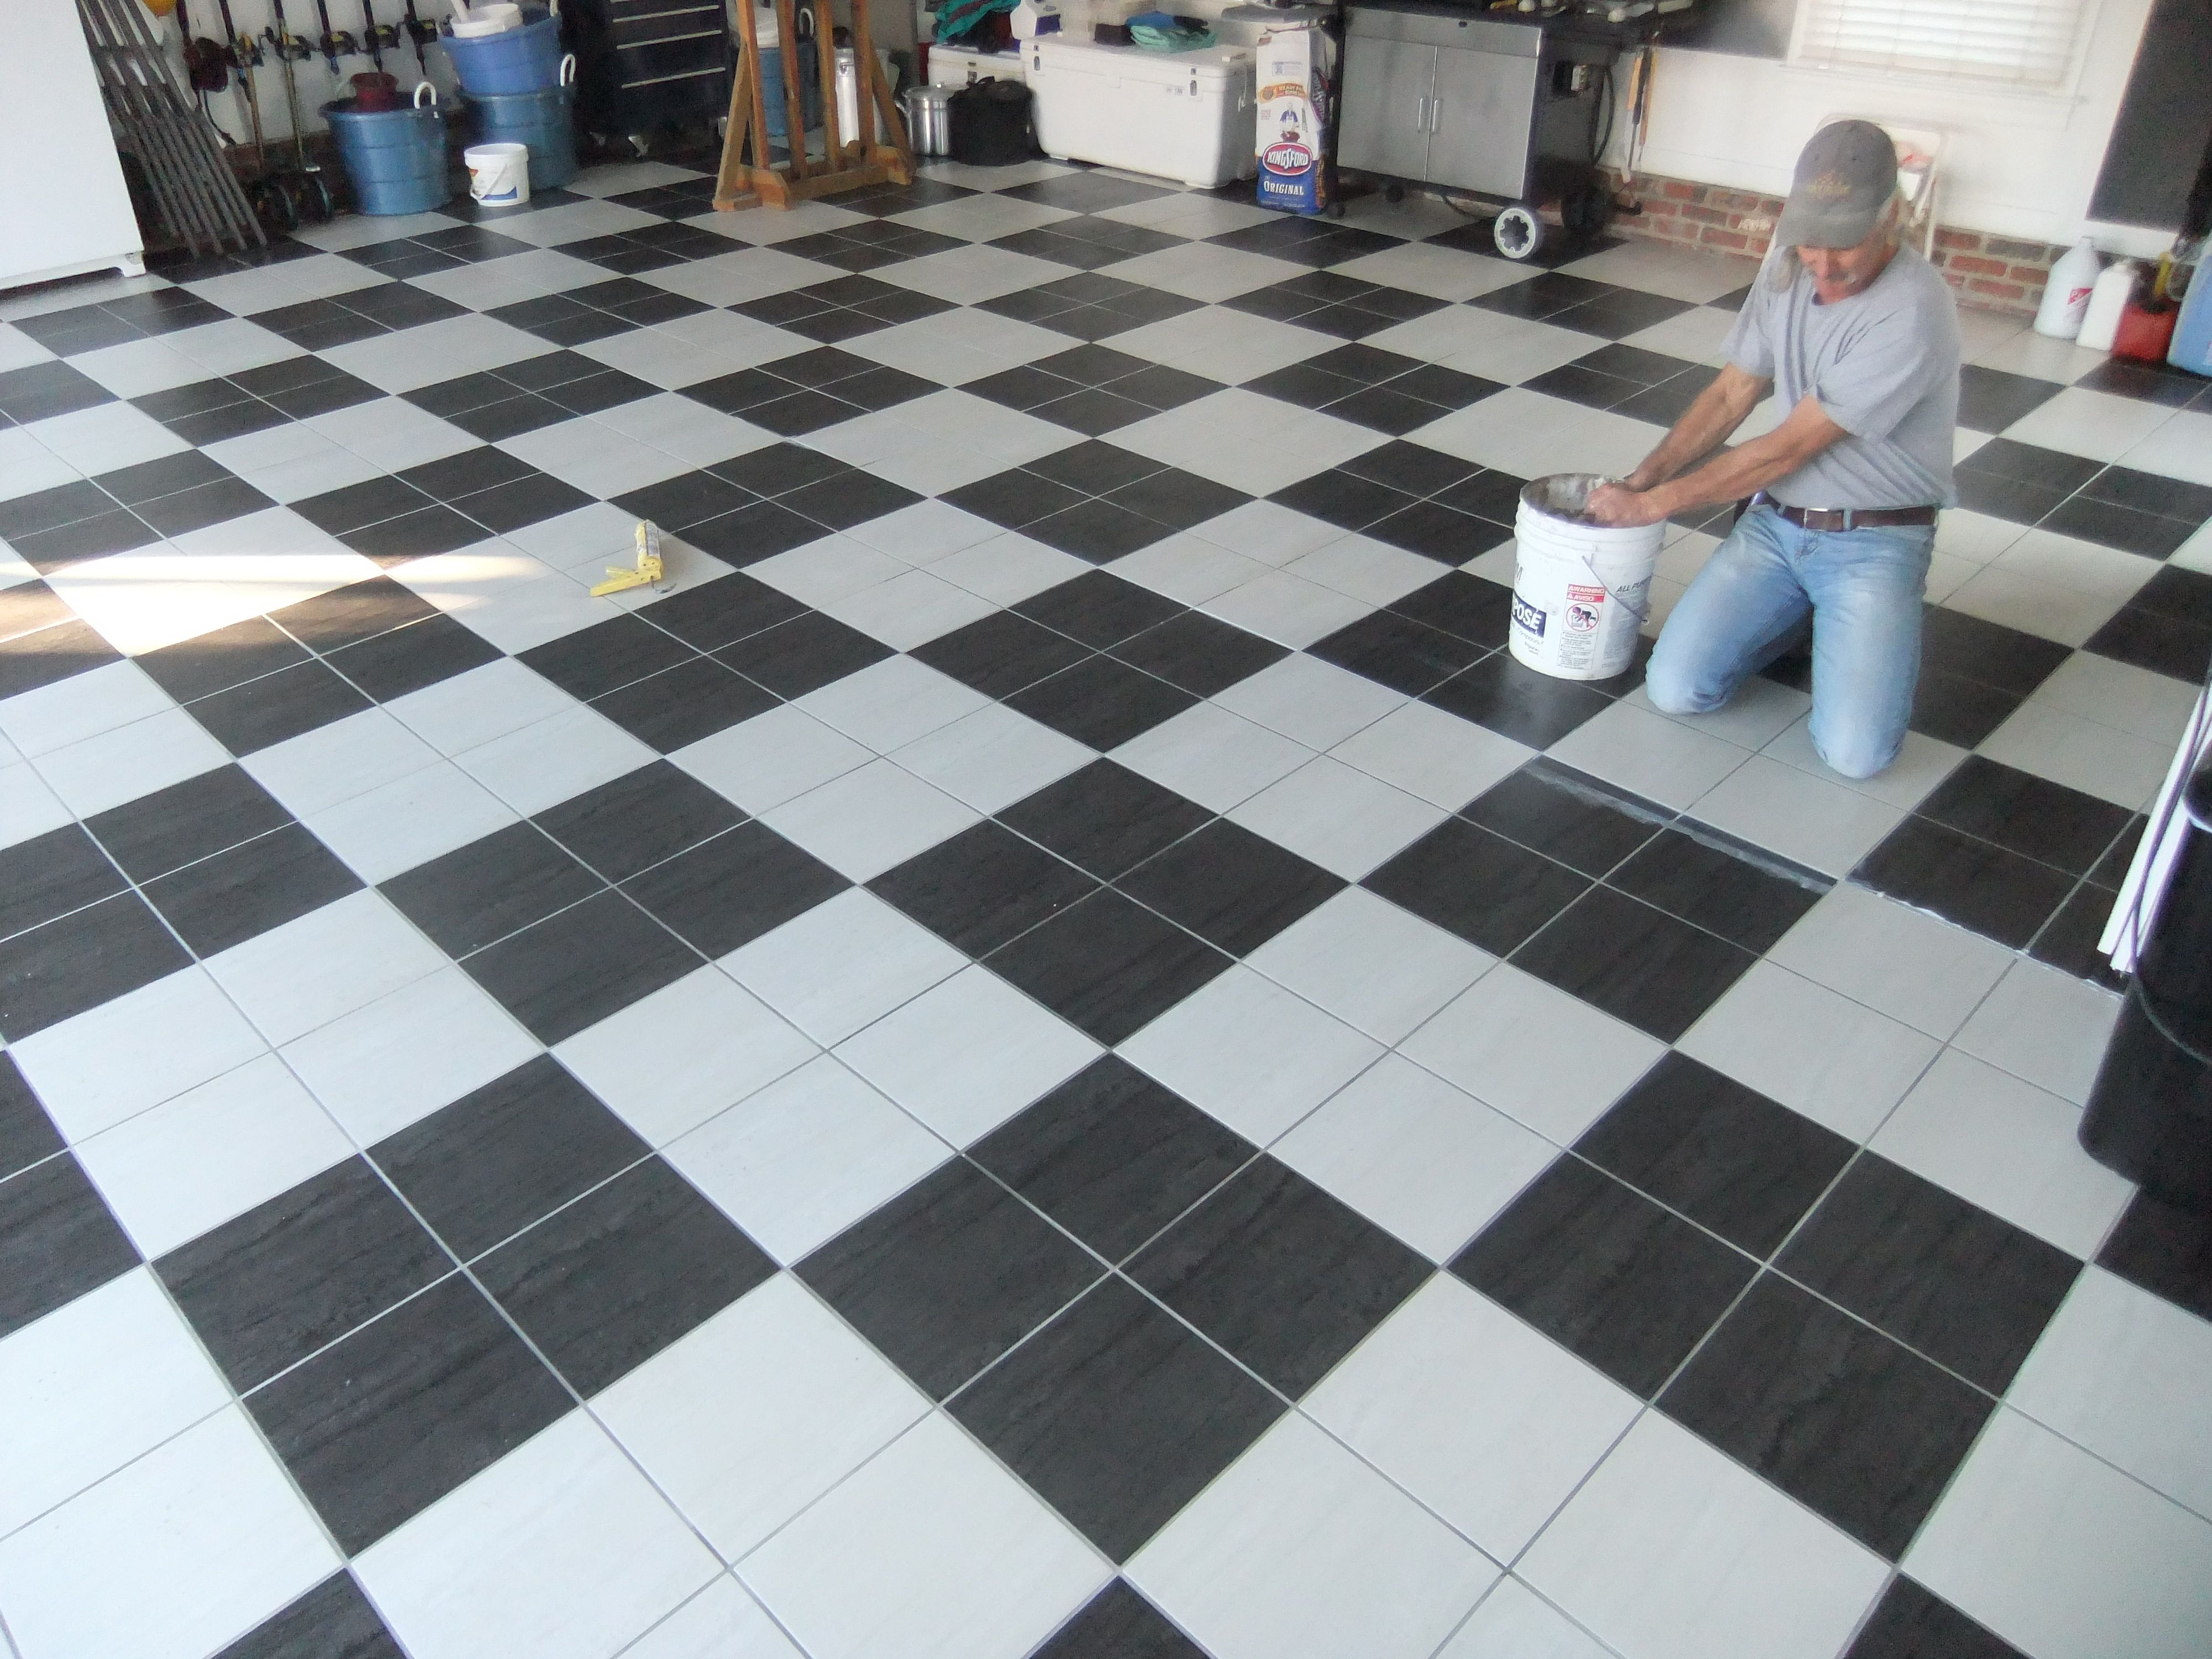 within paint pisos unique flooring to the being floor coating plain resin best garage garagare a applied throughout floors